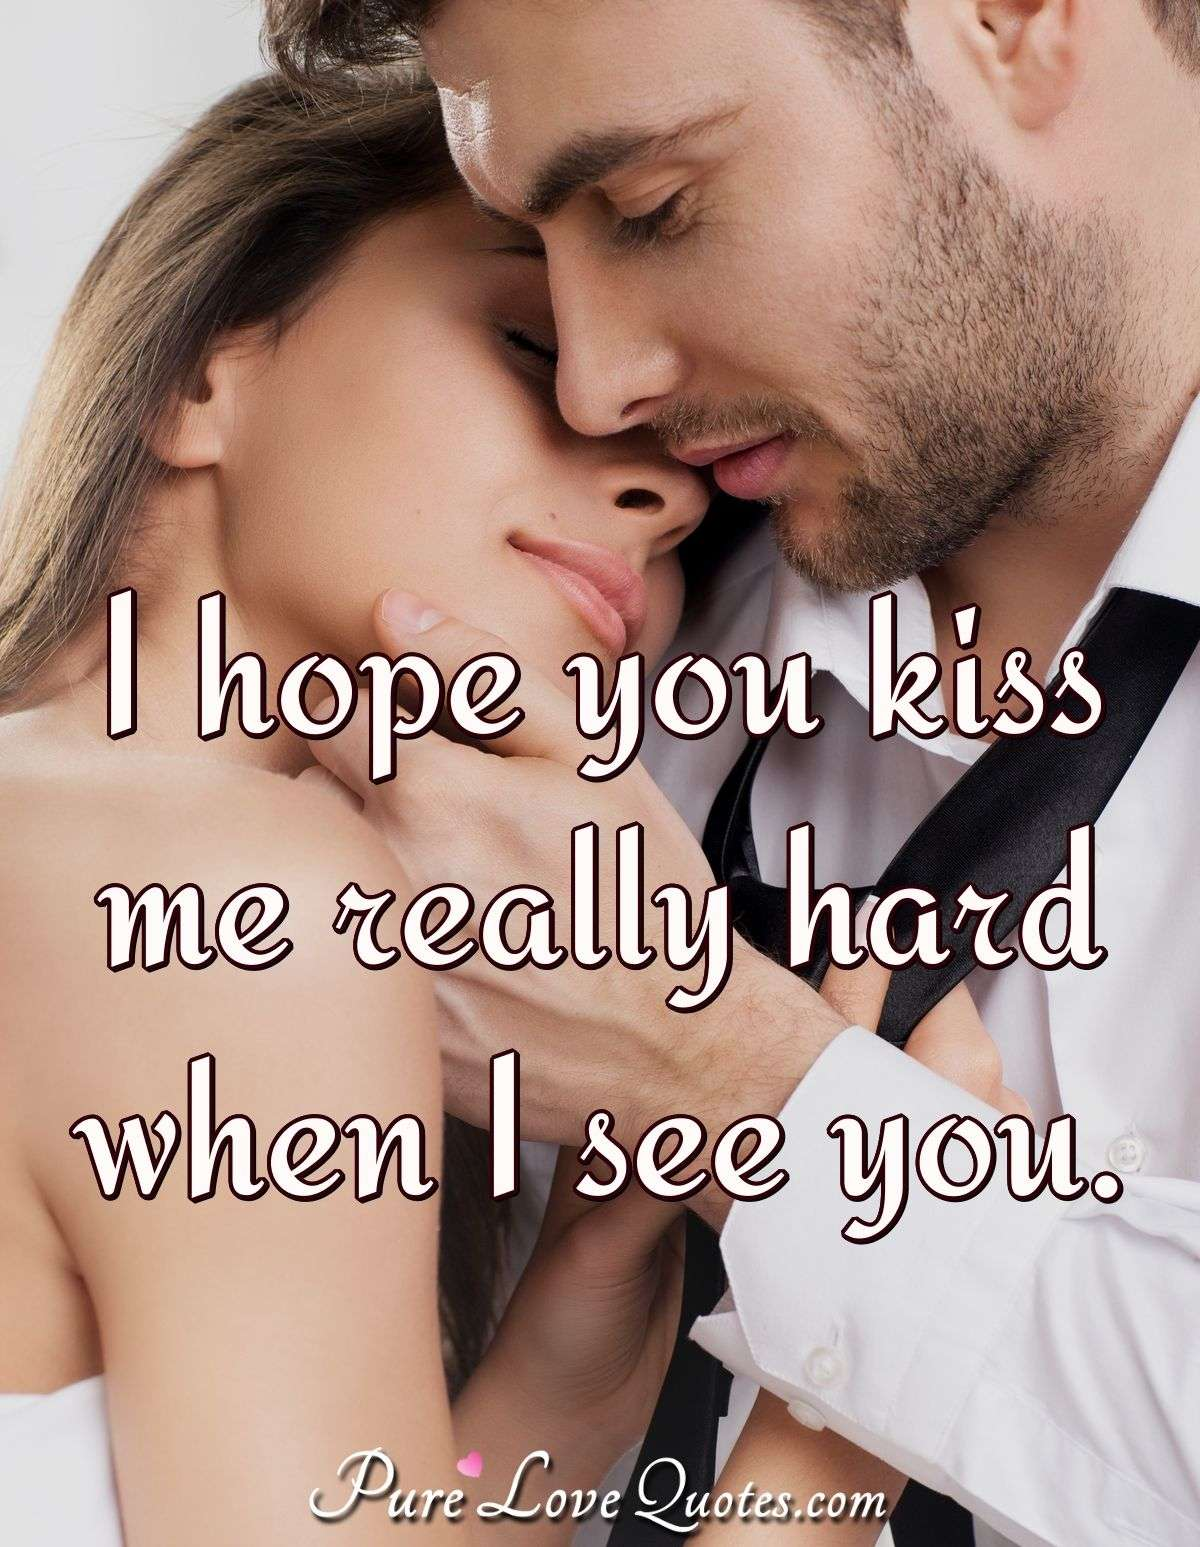 I hope you kiss me really hard when I see you. - Anonymous